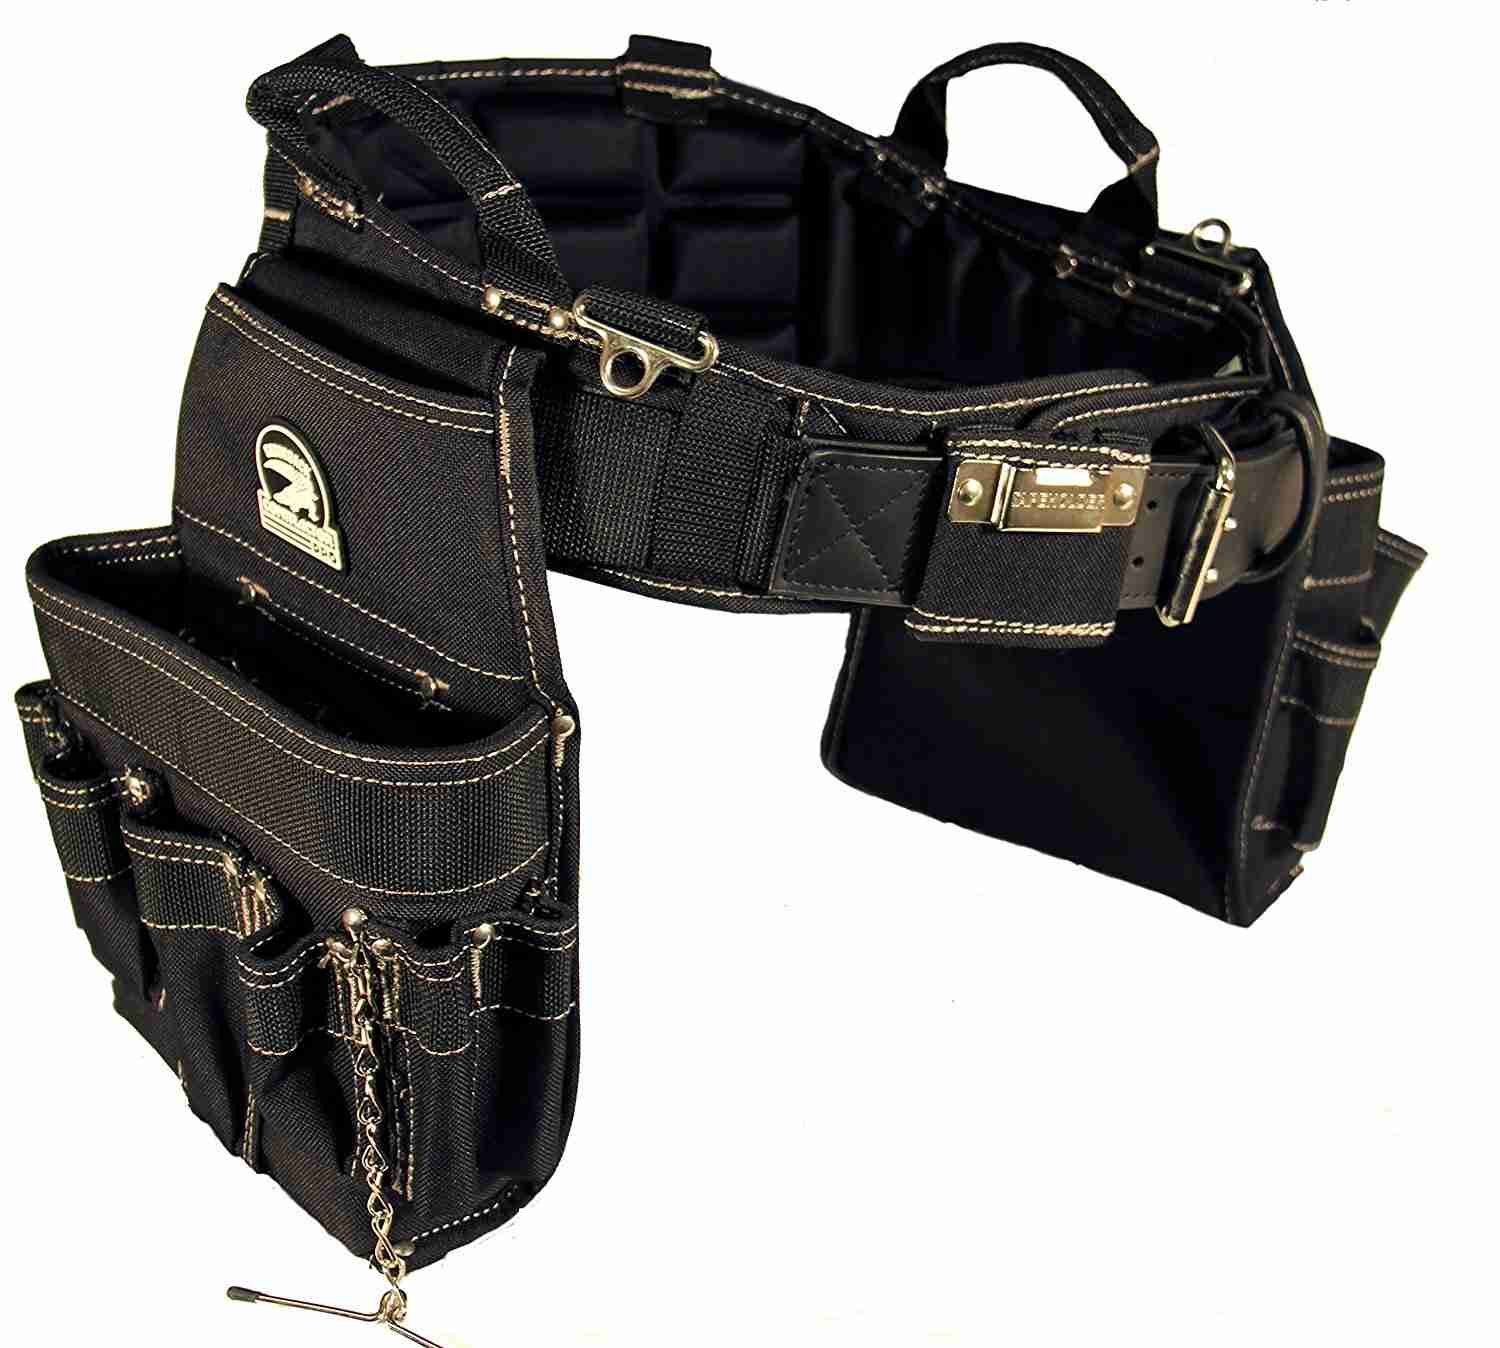 Gatorback B240 Electrician's Combo with Pro-Comfort Back Support Belt.